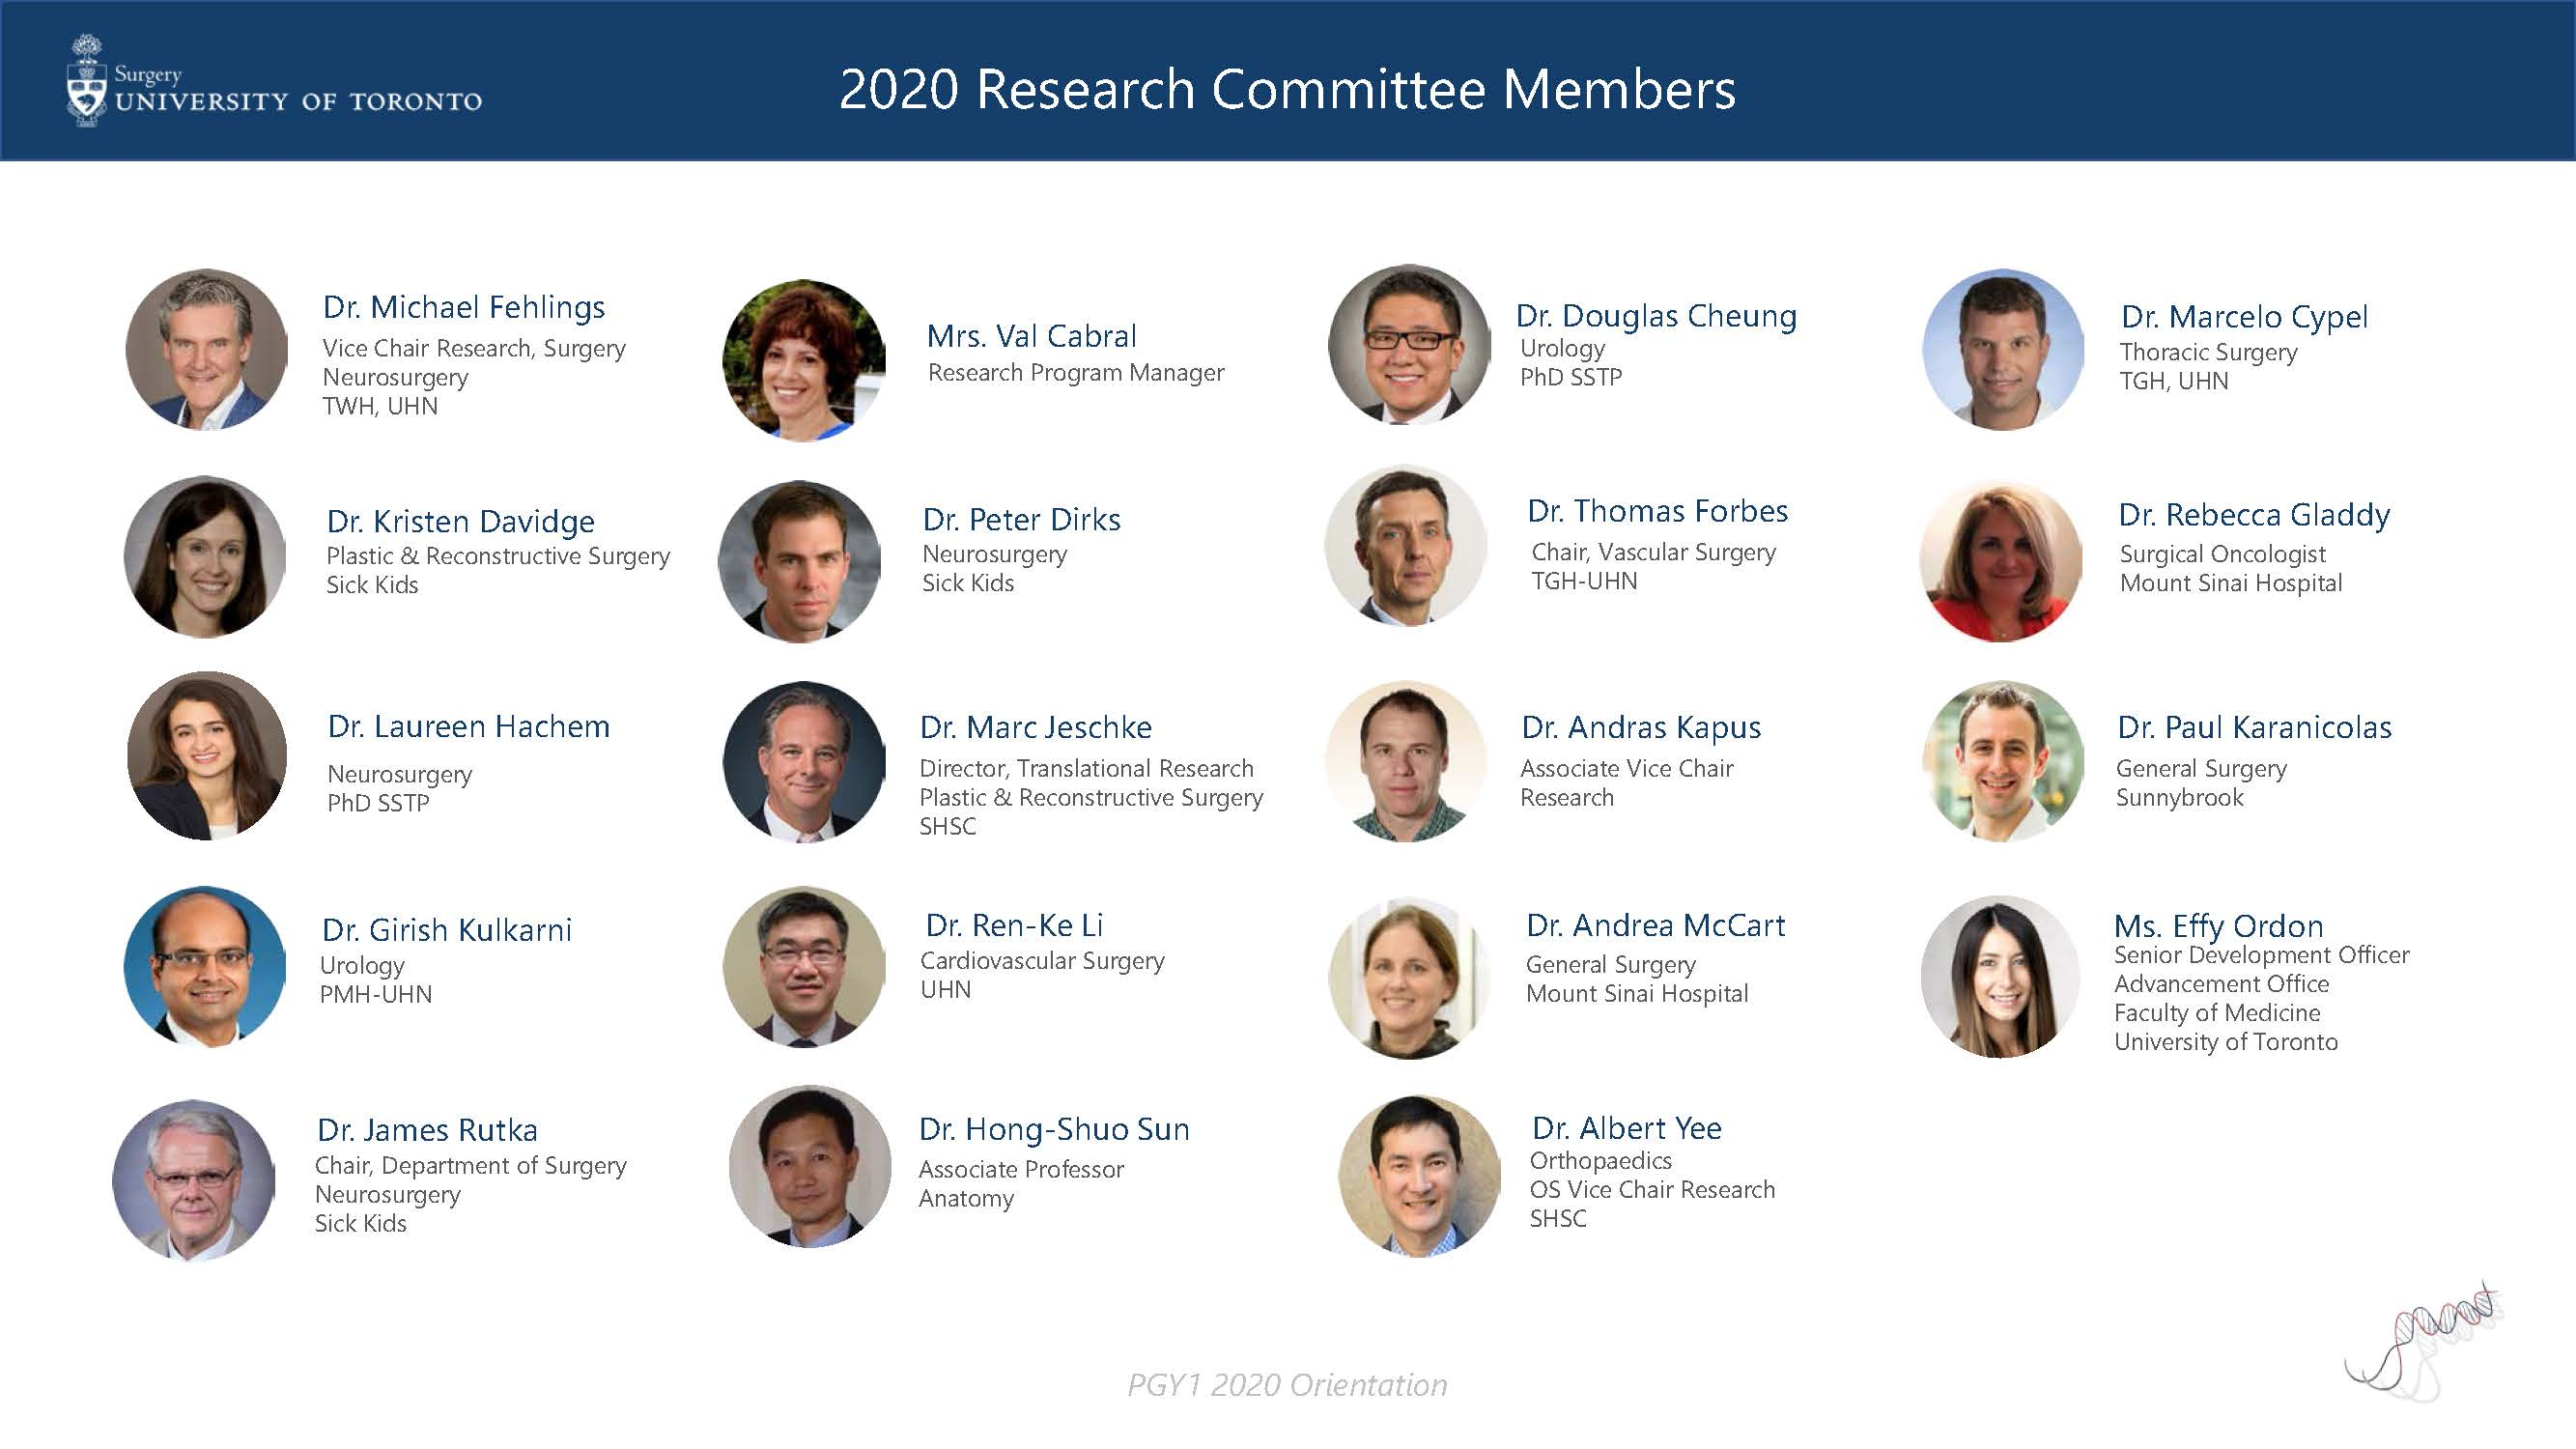 research committee members 2020